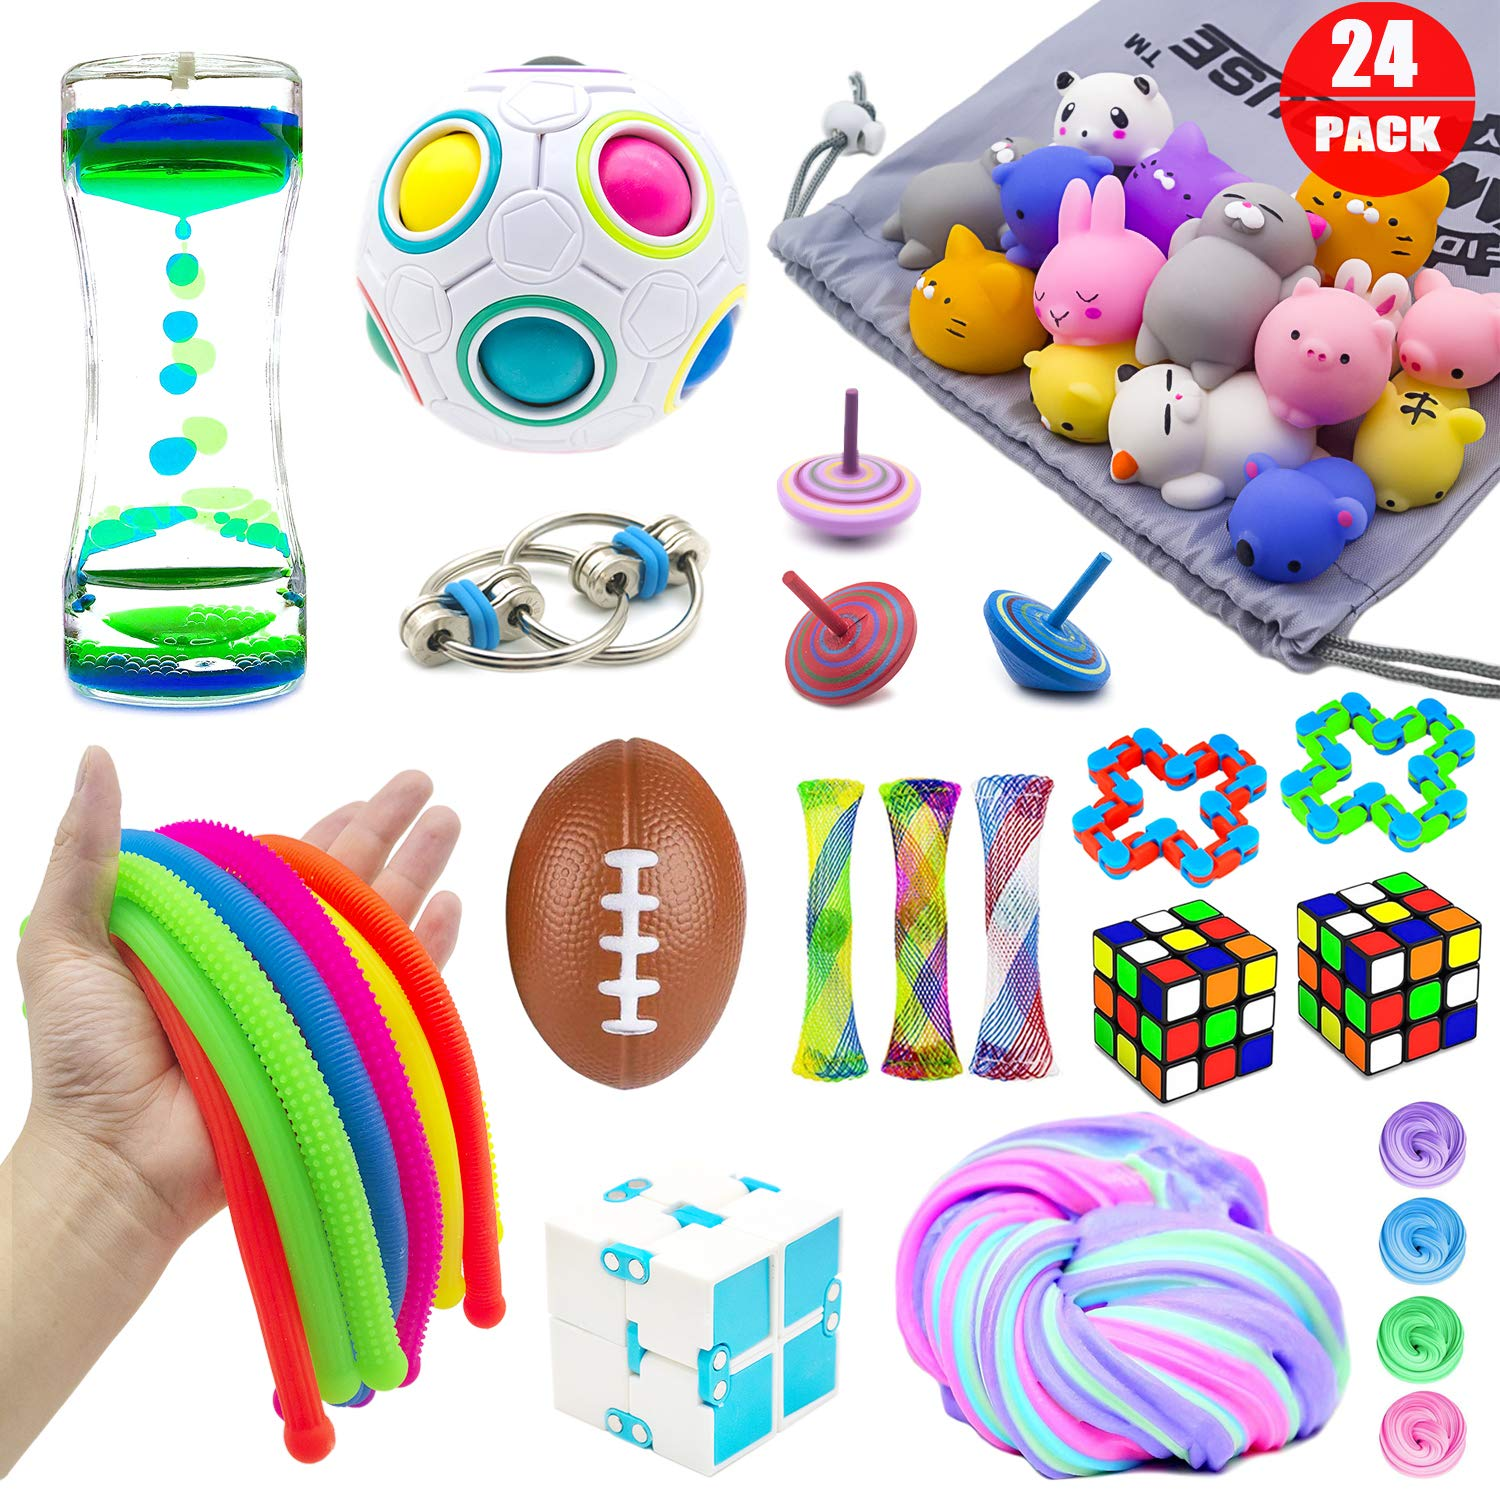 Infinity Cube Fidget Cube Fidget Toy Pack 13 Pcs Sensory Fidget Toys Set for Teens Kids Adults with ADHD Autism Stress Balls Anxiety Relief Toys Marble Mesh Fidgets Puzzle Ball